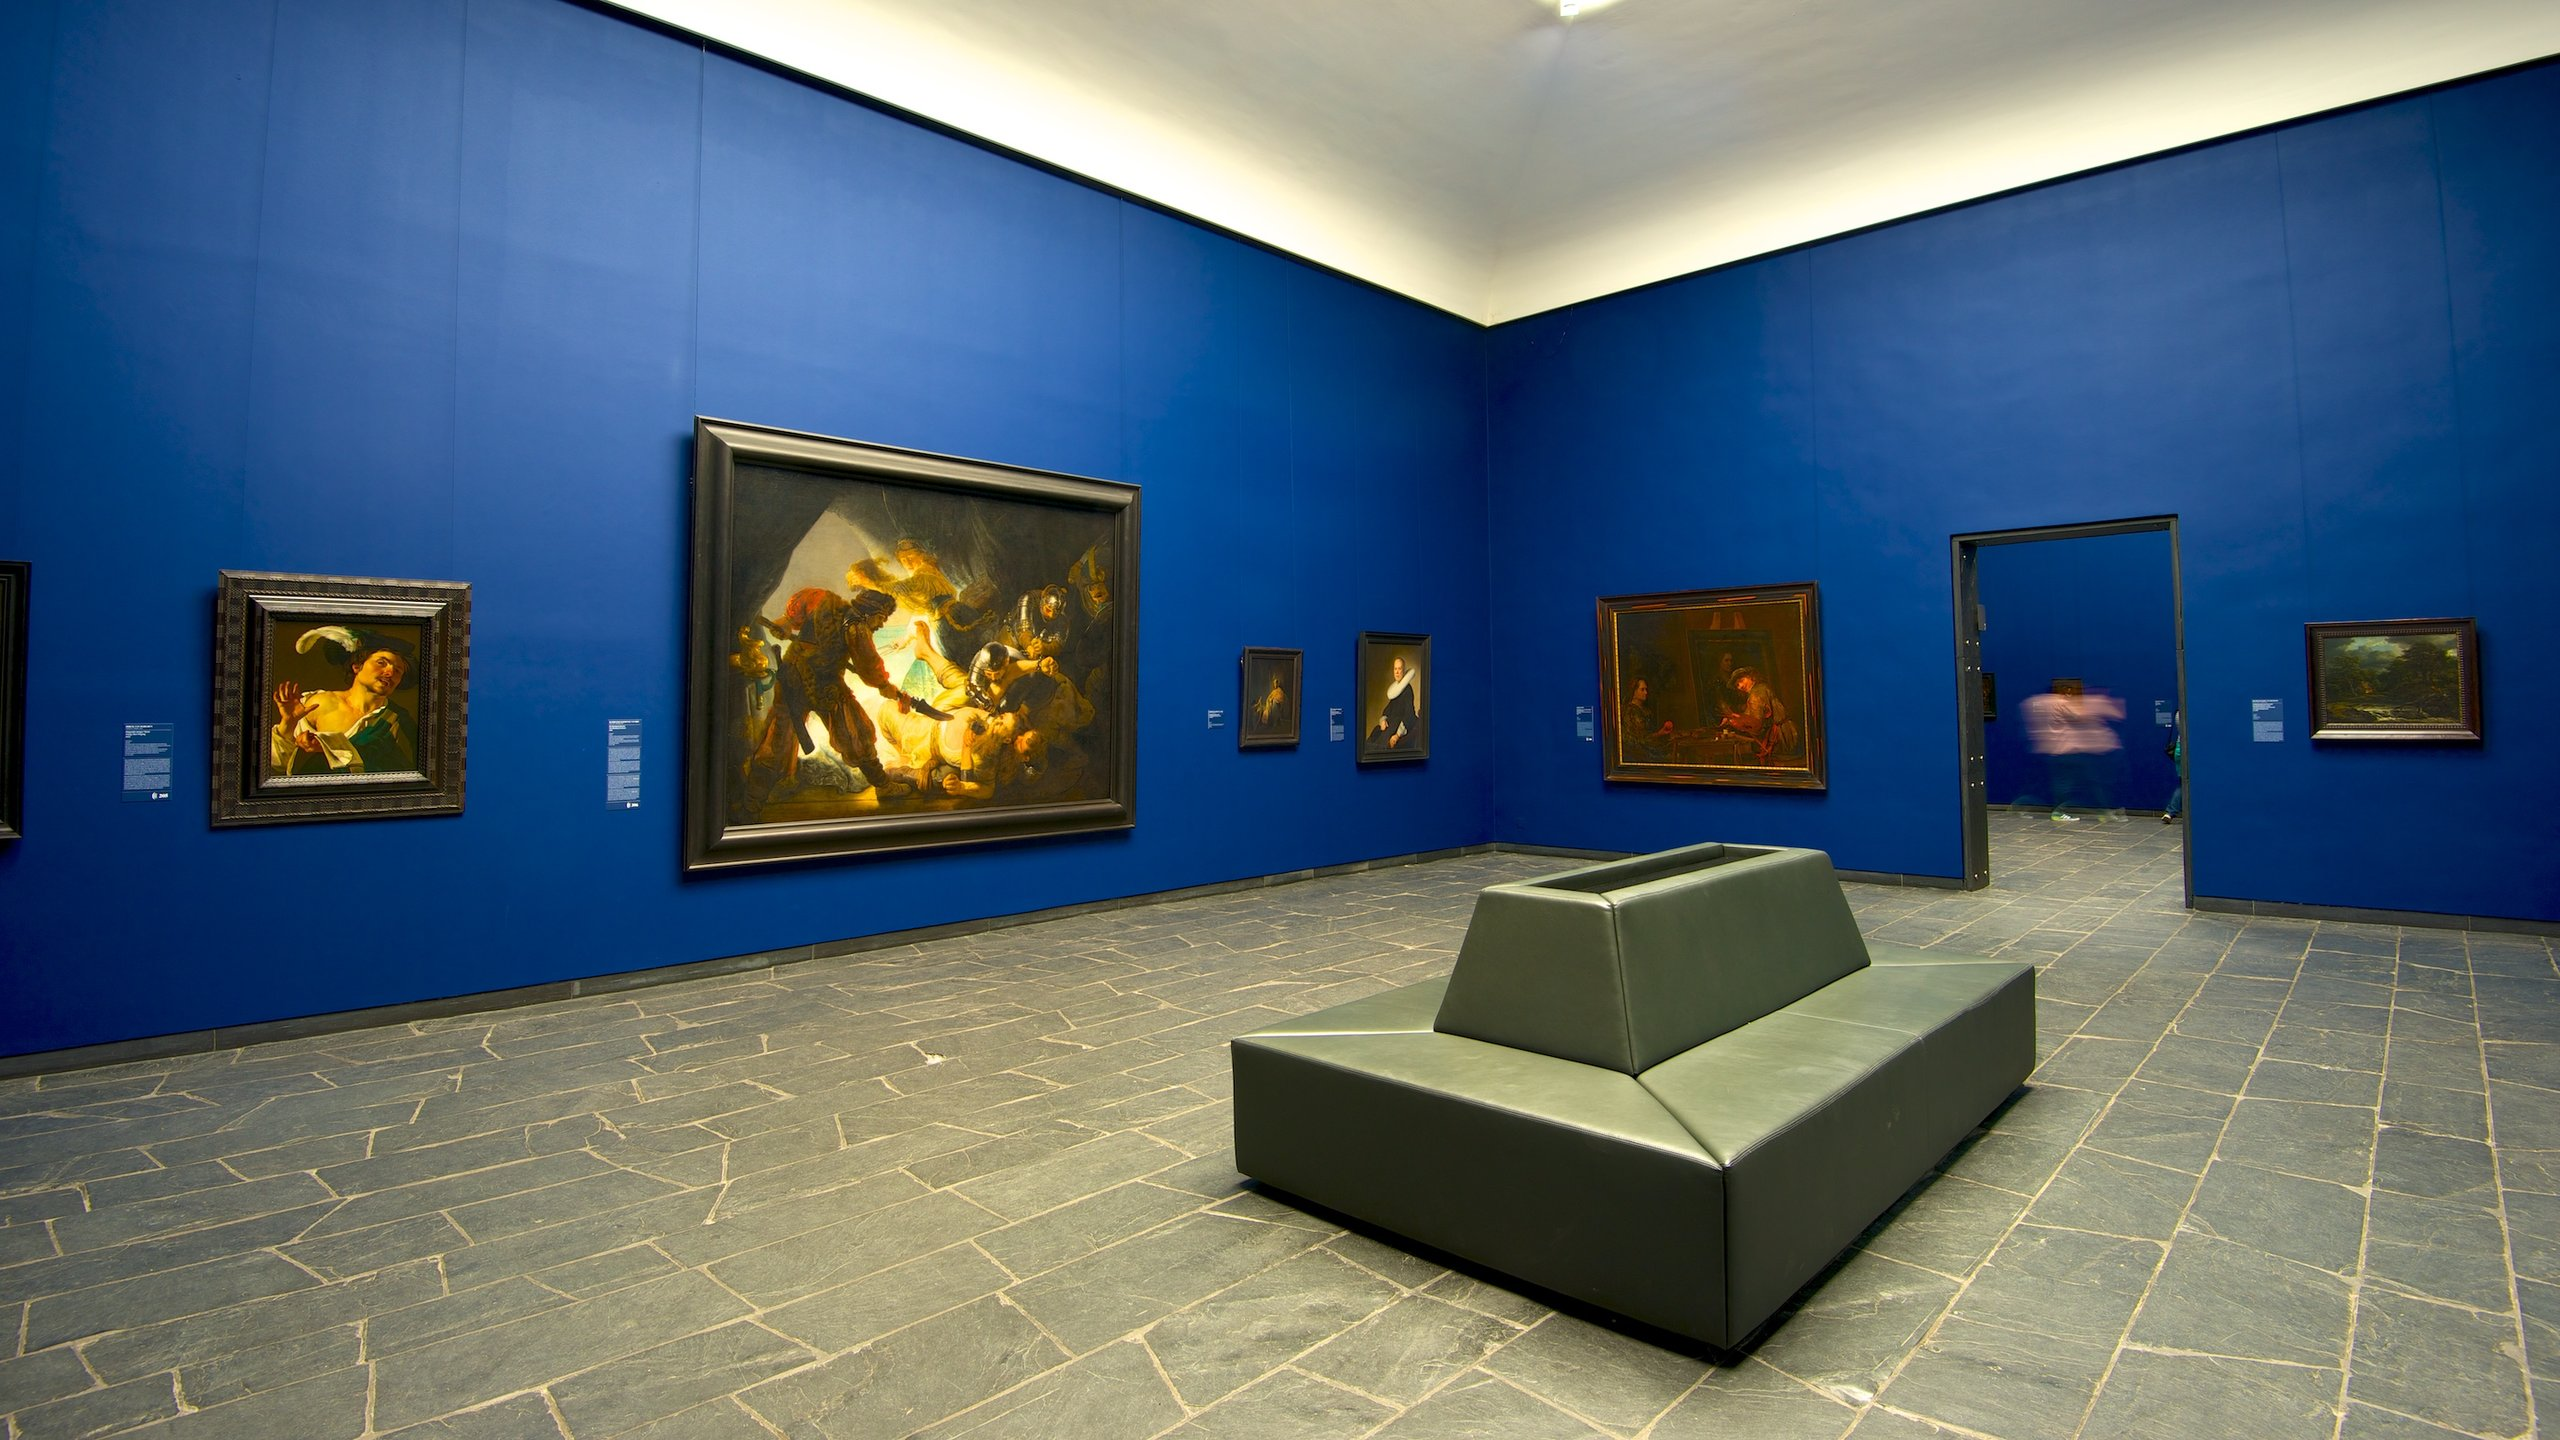 Browse through more than 700 years of art history in the extensive collection of this museum of fine art, which was initiated by a Frankfurt banker.